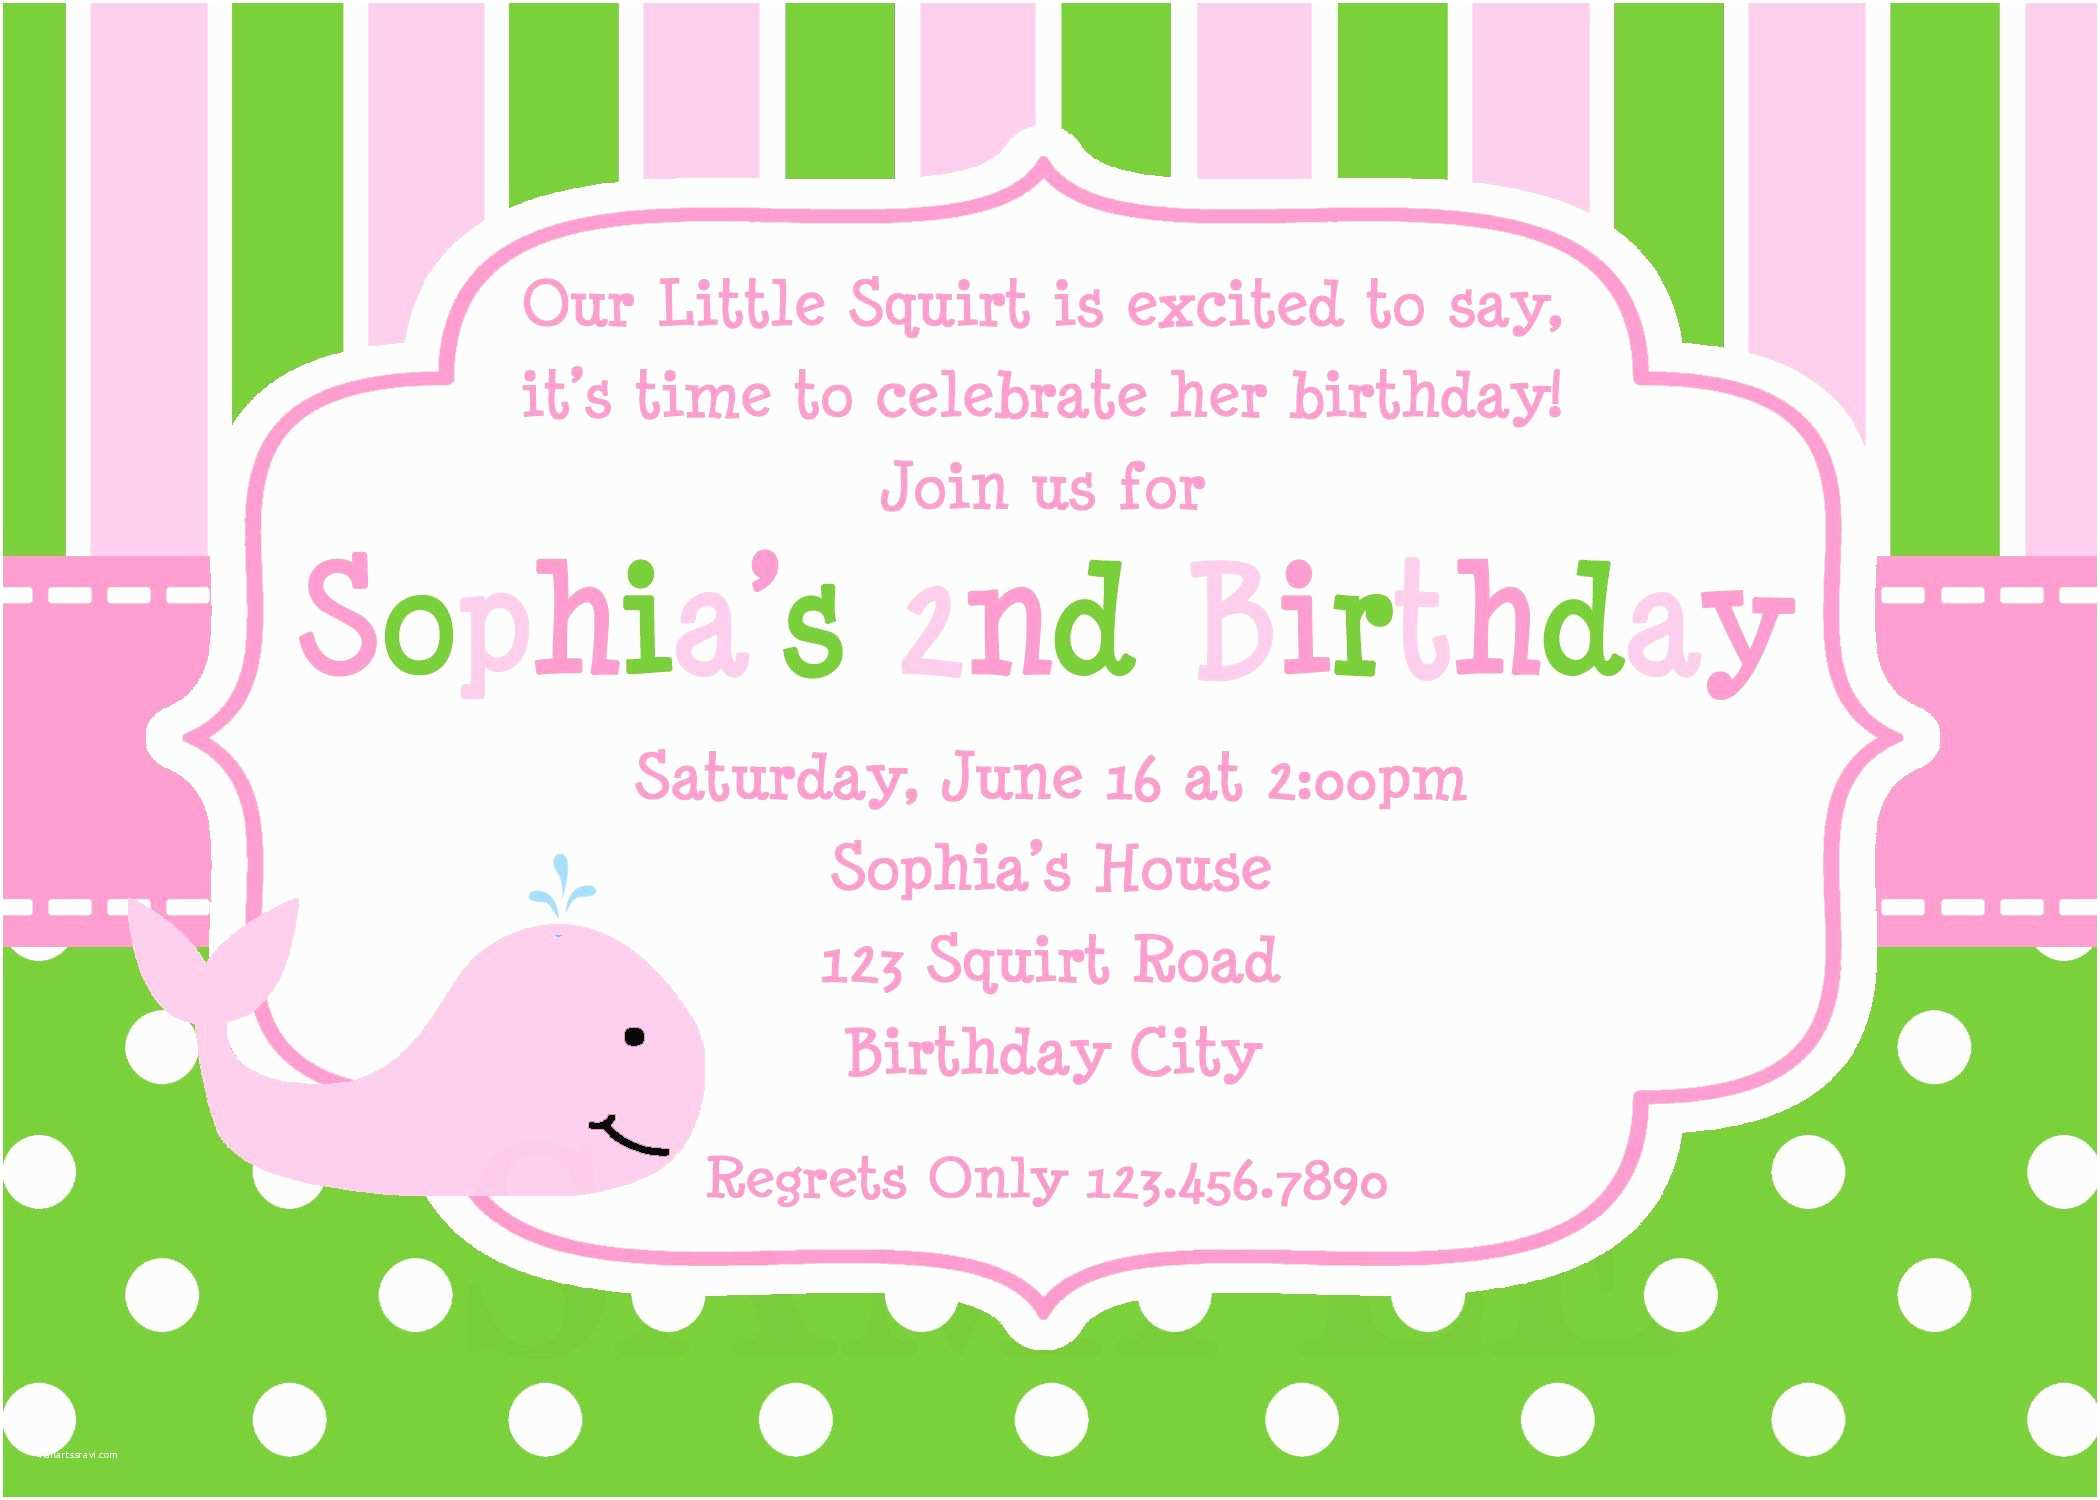 Party Invitation Template 21 Kids Birthday Invitation Wording that We Can Make